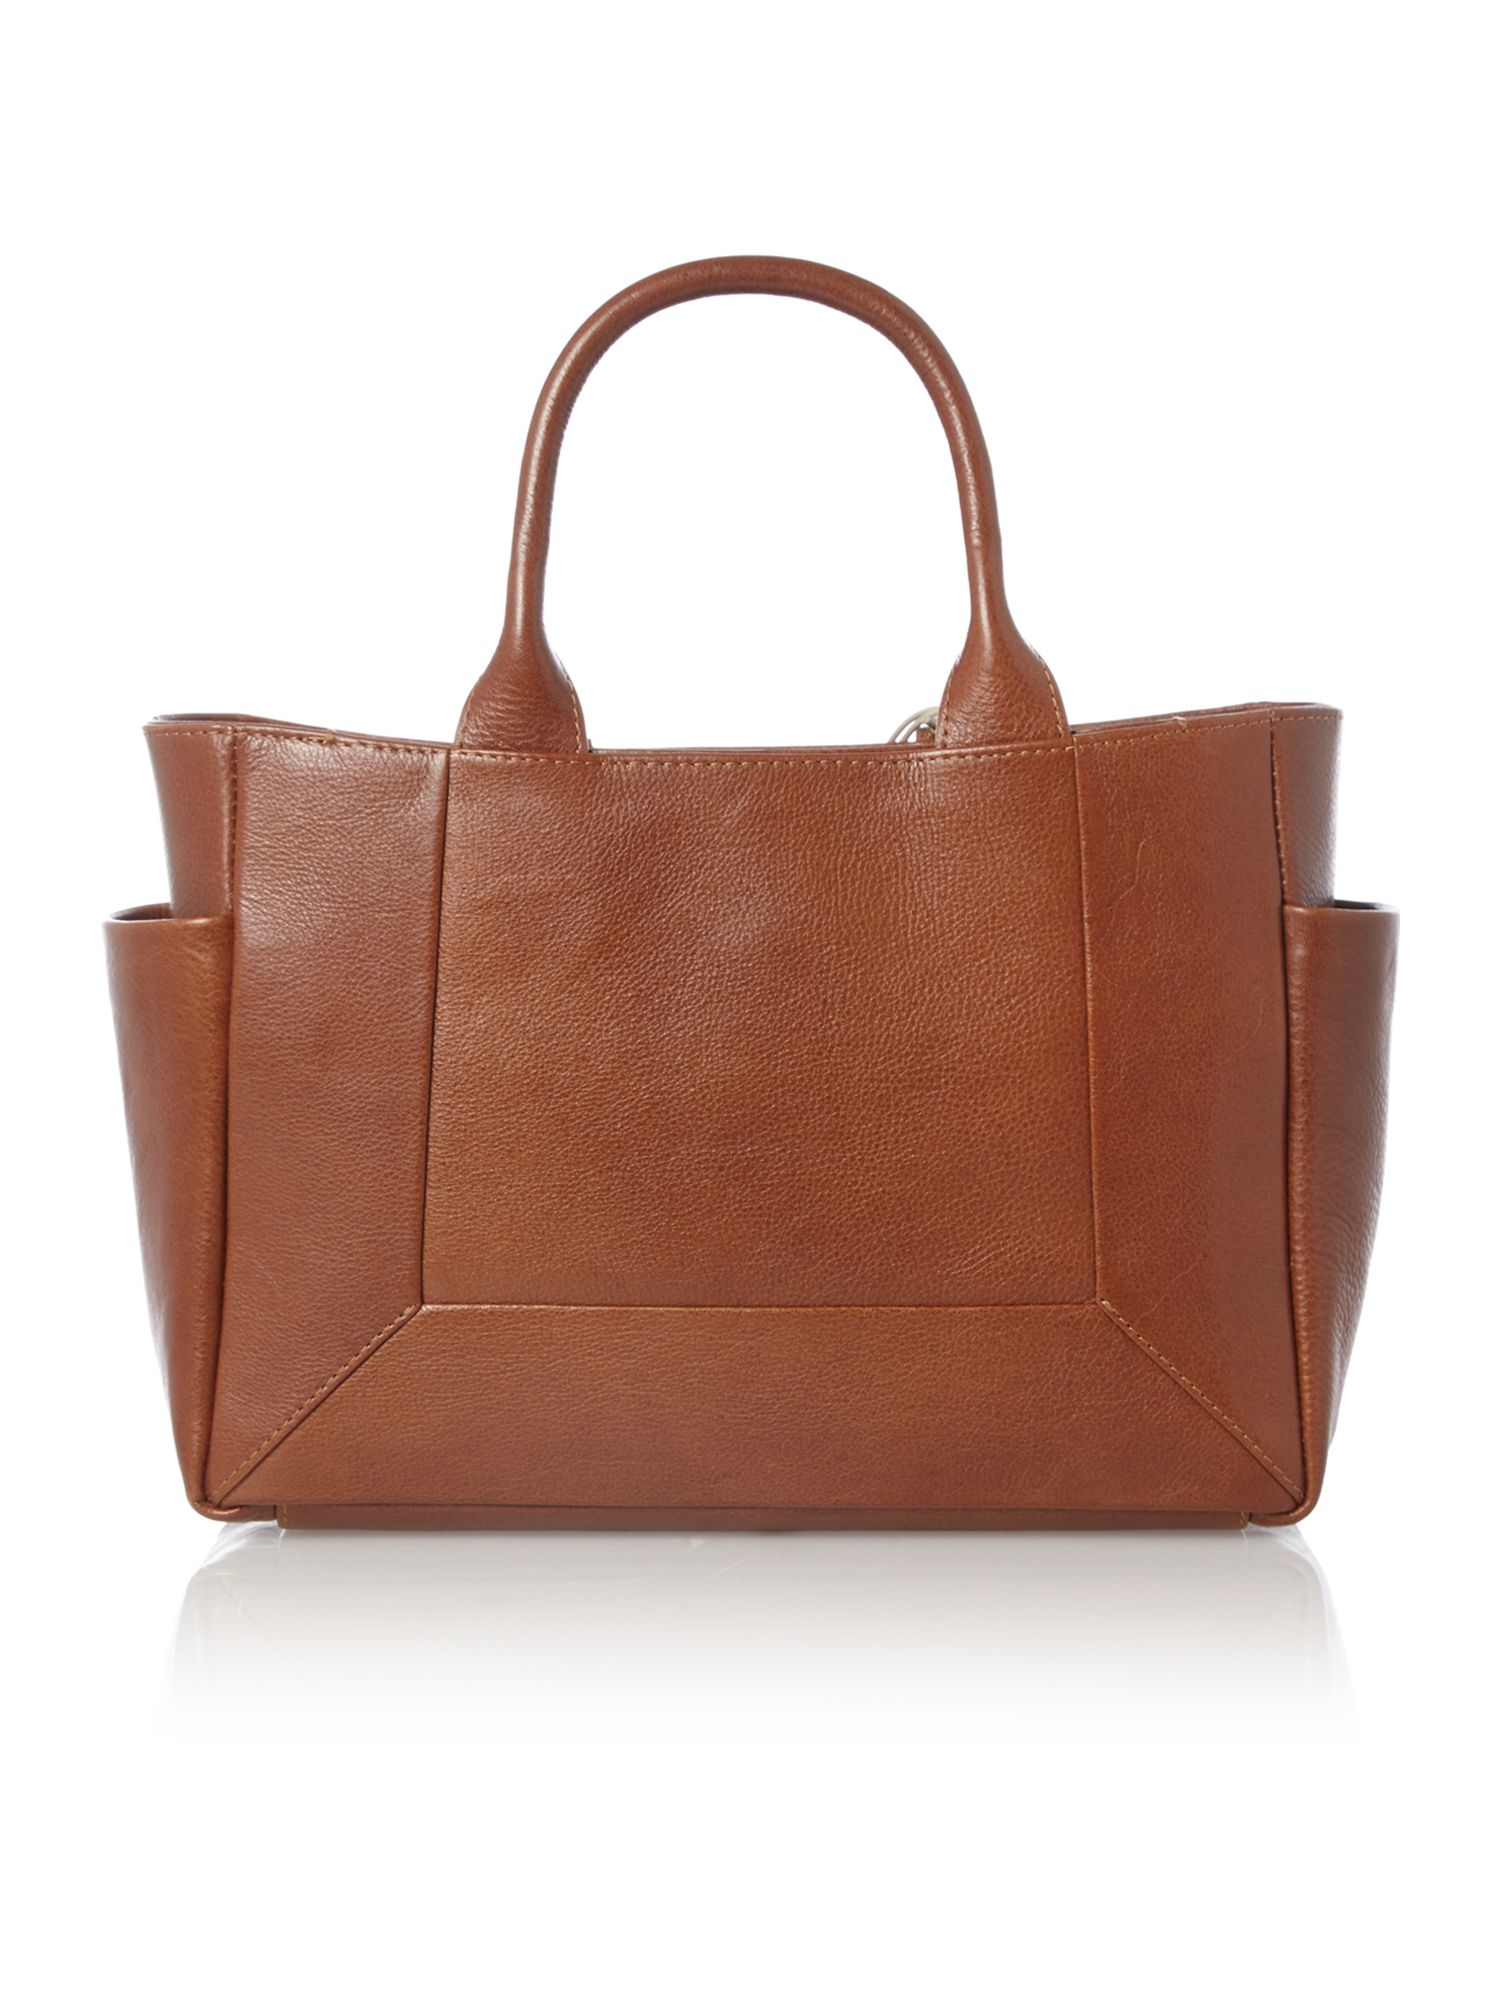 Border tan leather medium ziptop multiway bag